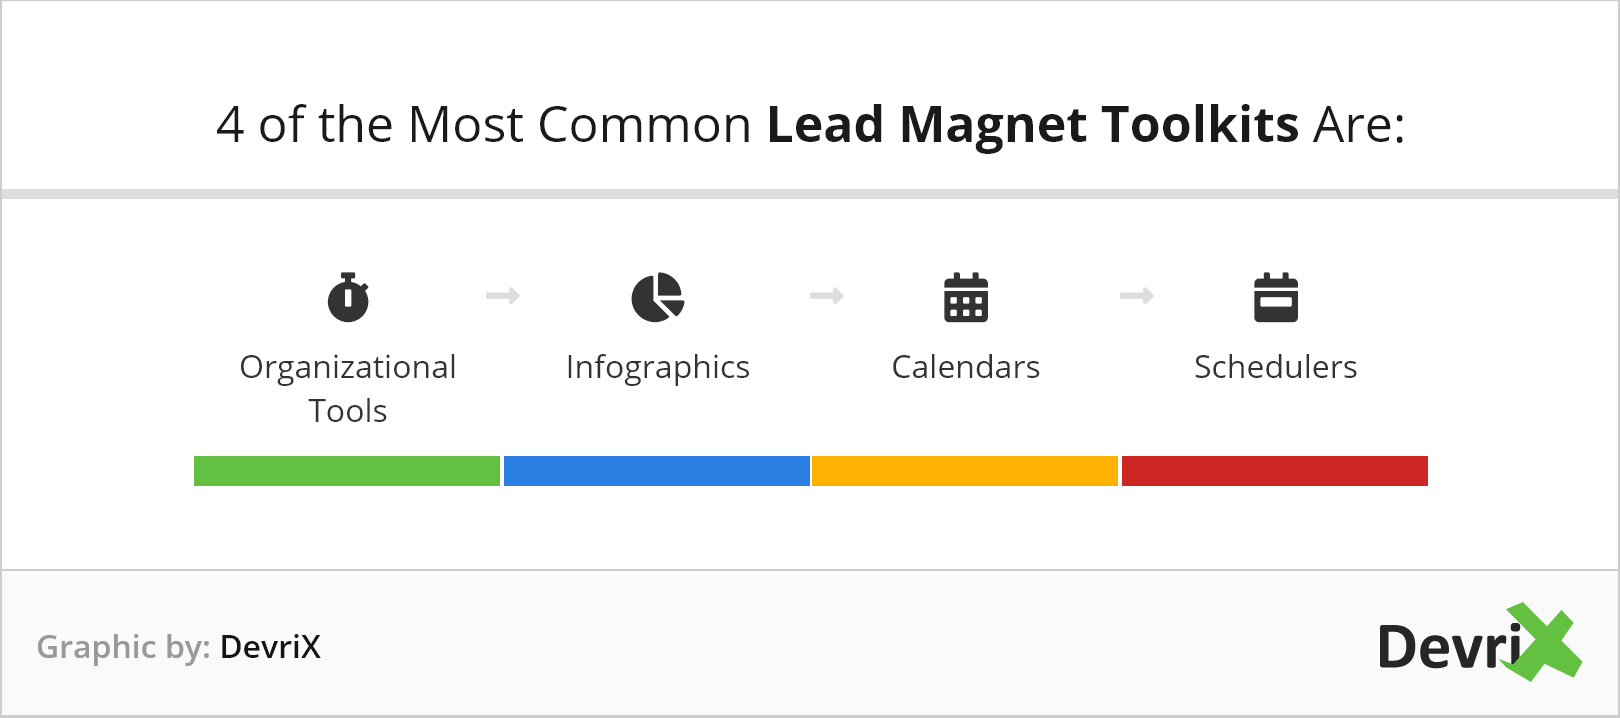 Four of the most popular lead magnet toolkits